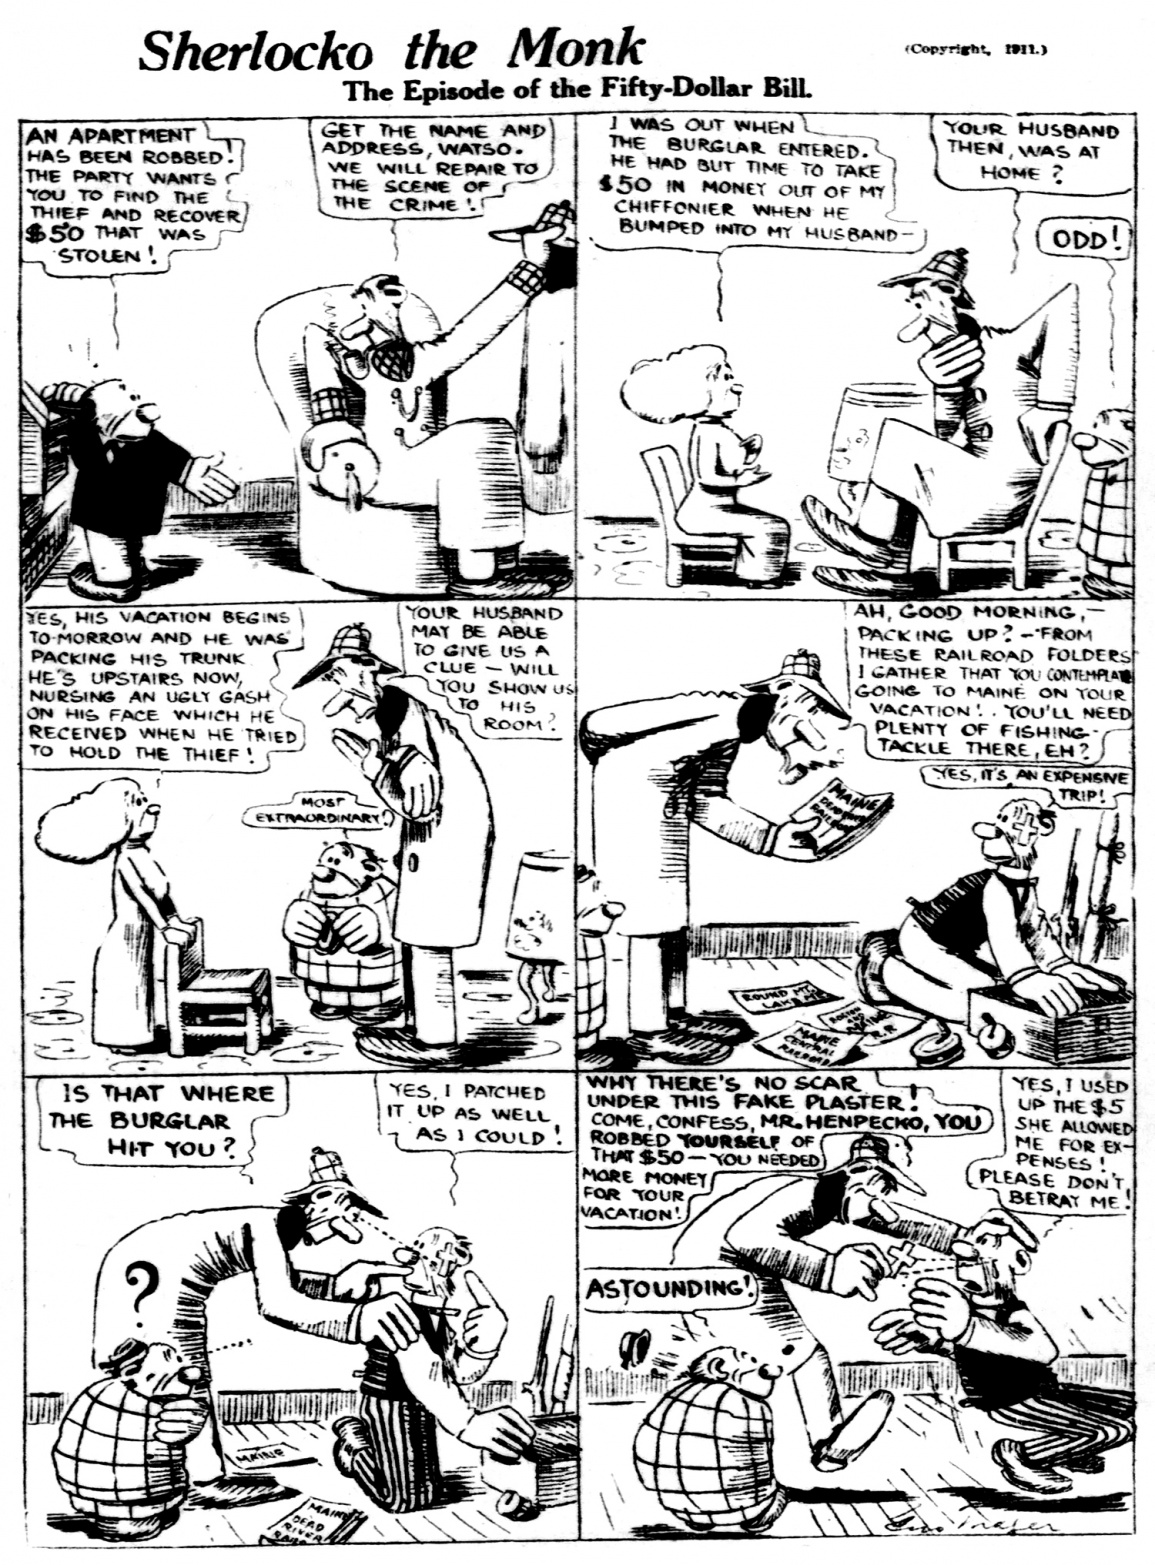 Sherlocko the Monk: The Episode of the Fifty Dollar Bill (July 24, 1911)